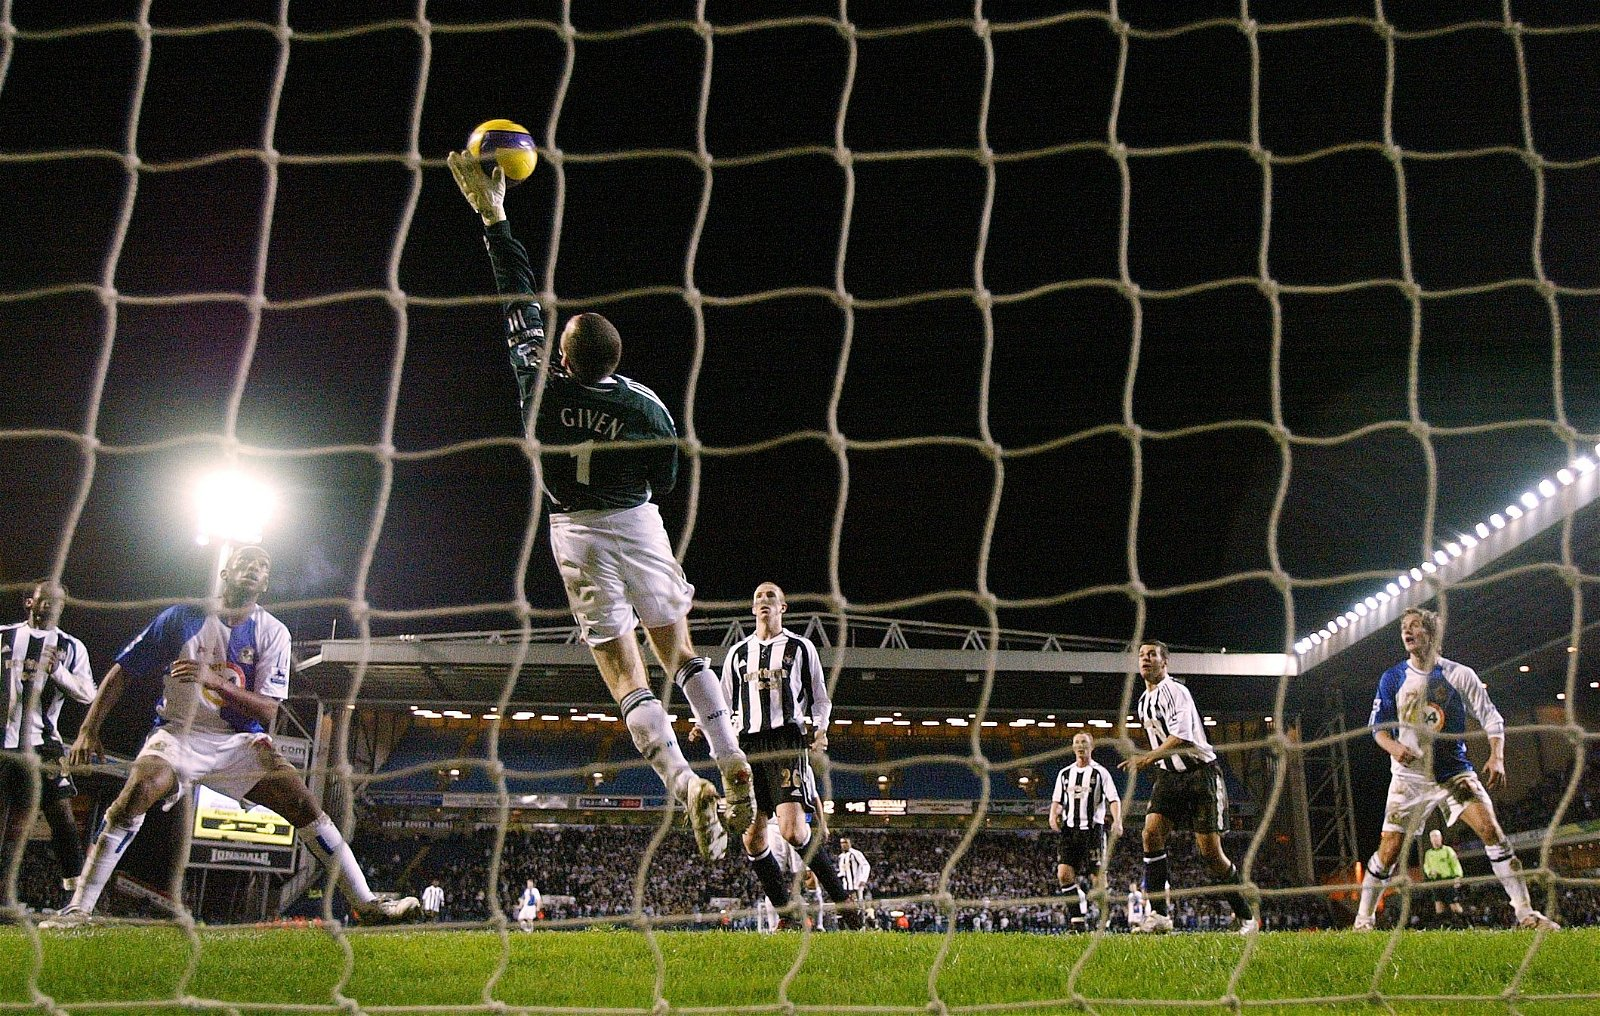 Shay Given of Newcastle makes a save against Blackburn Rovers 2006/07